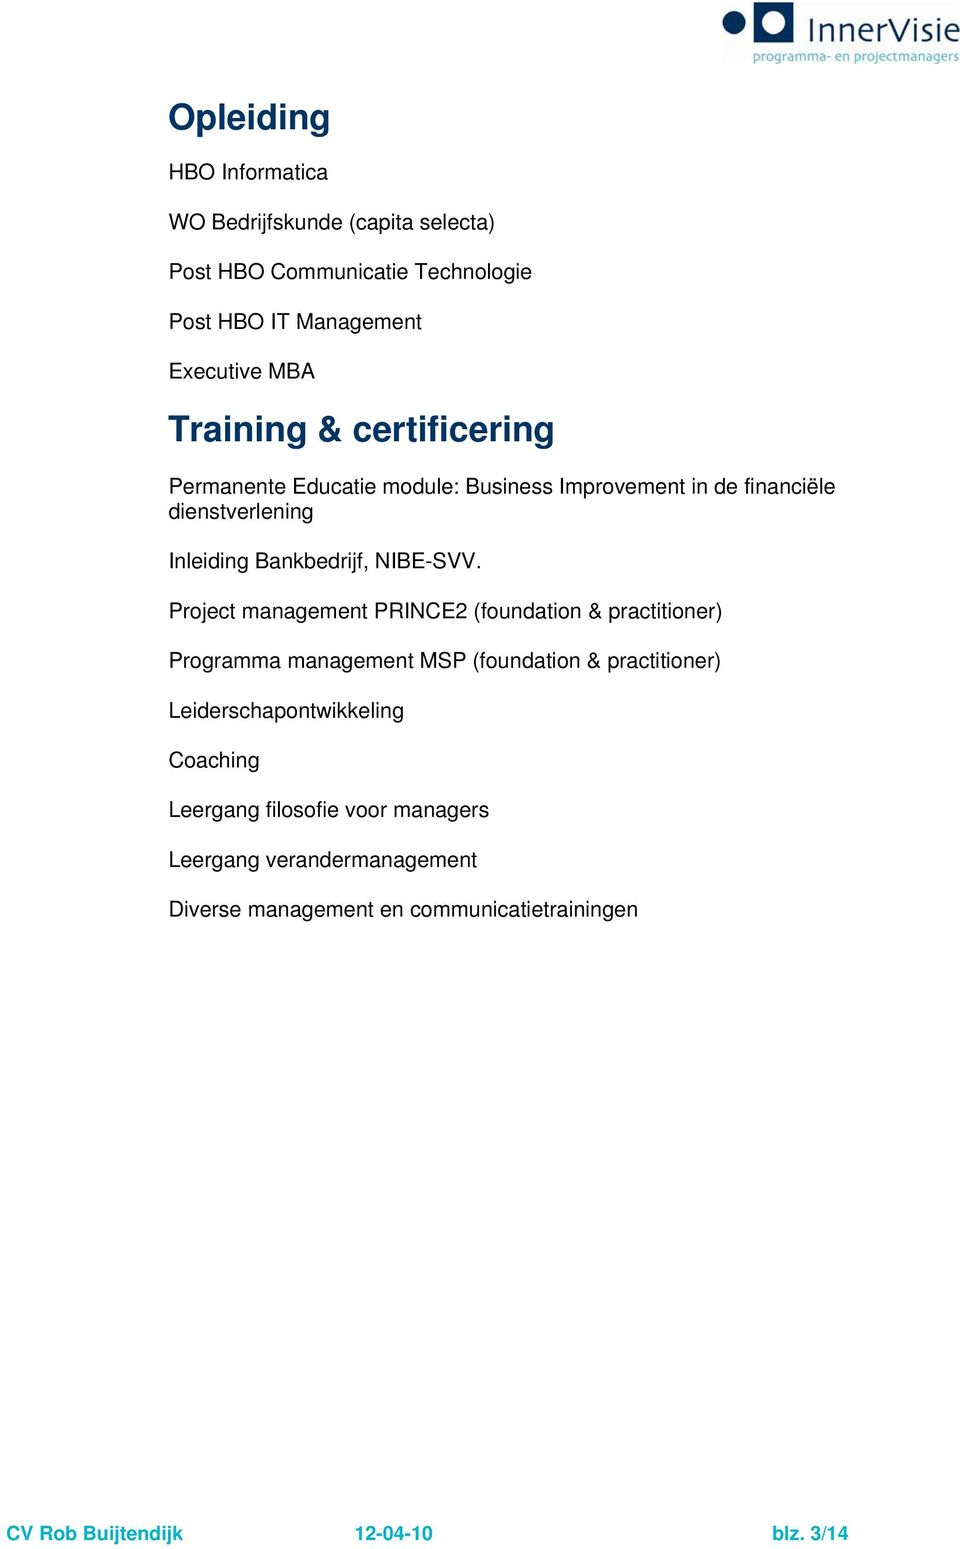 Project management PRINCE2 (foundation & practitioner) Programma management MSP (foundation & practitioner) Leiderschapontwikkeling